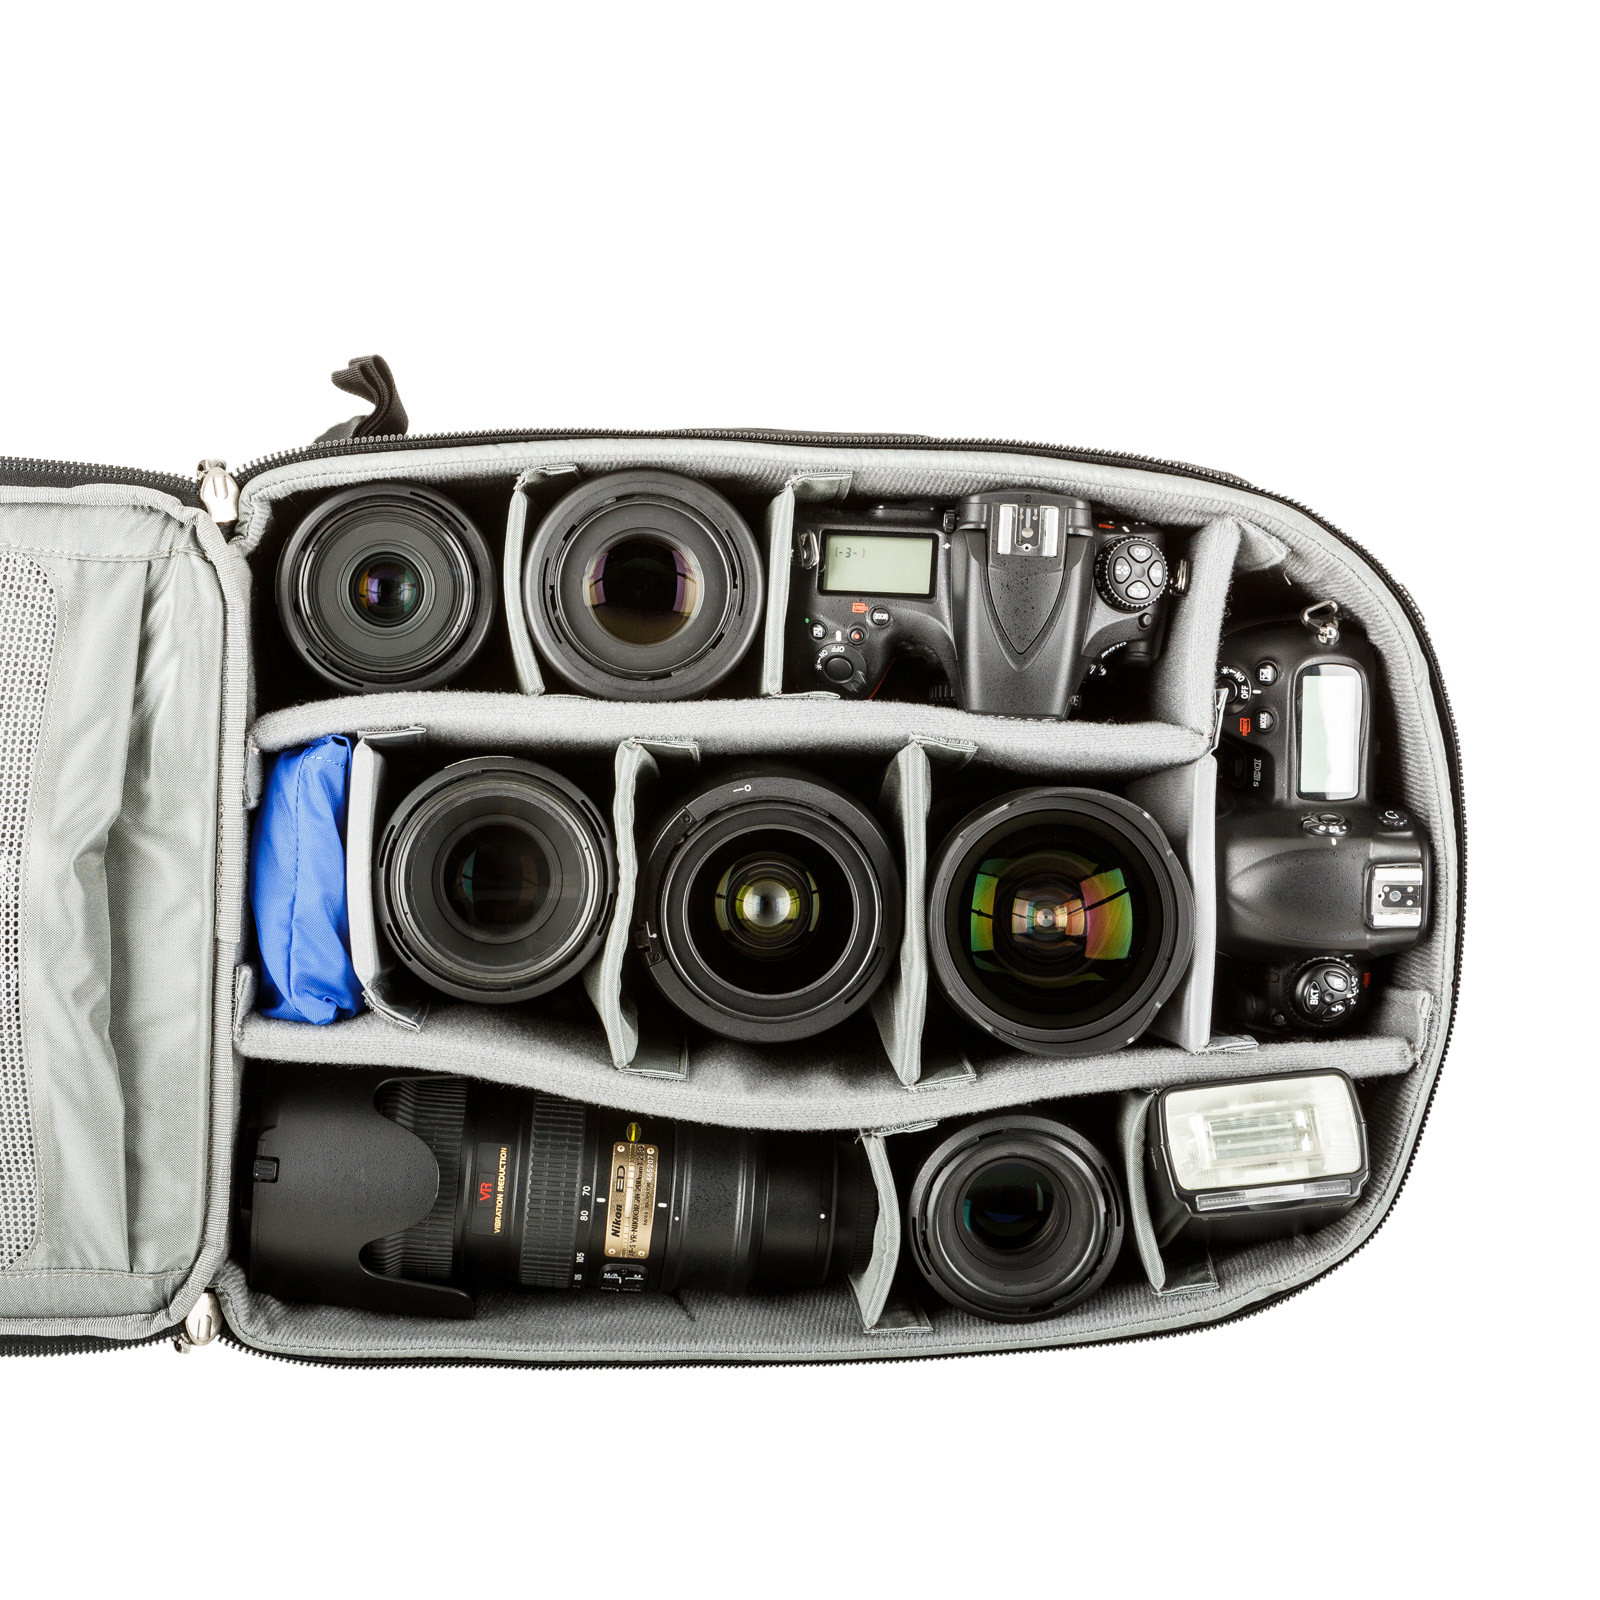 Thinktank Airport commuter. great for a carry on and durable enough for hiking.